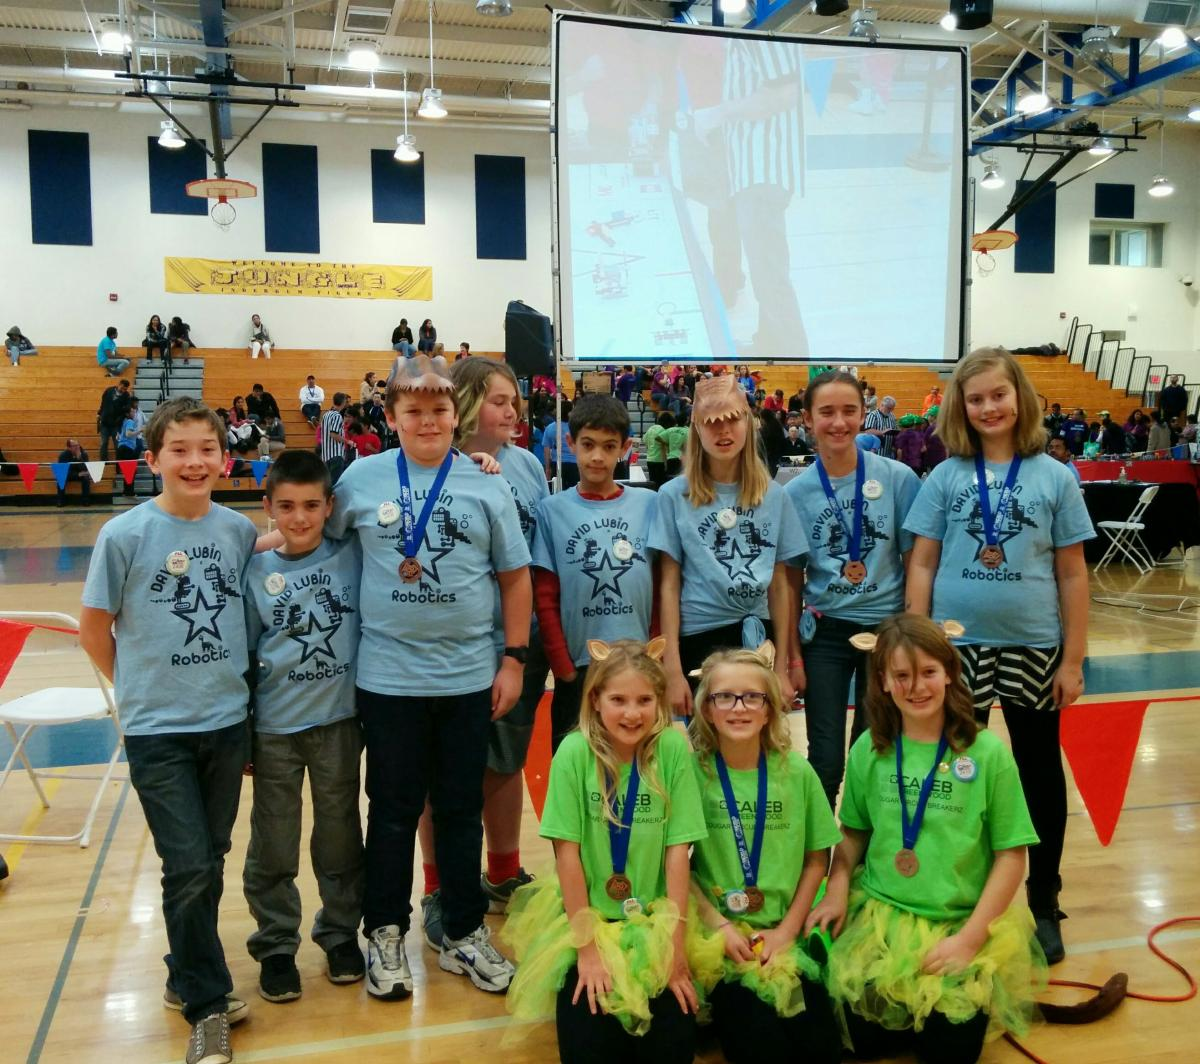 Image of Caleb Greenwood, Lubin robotics teams win at regional competition